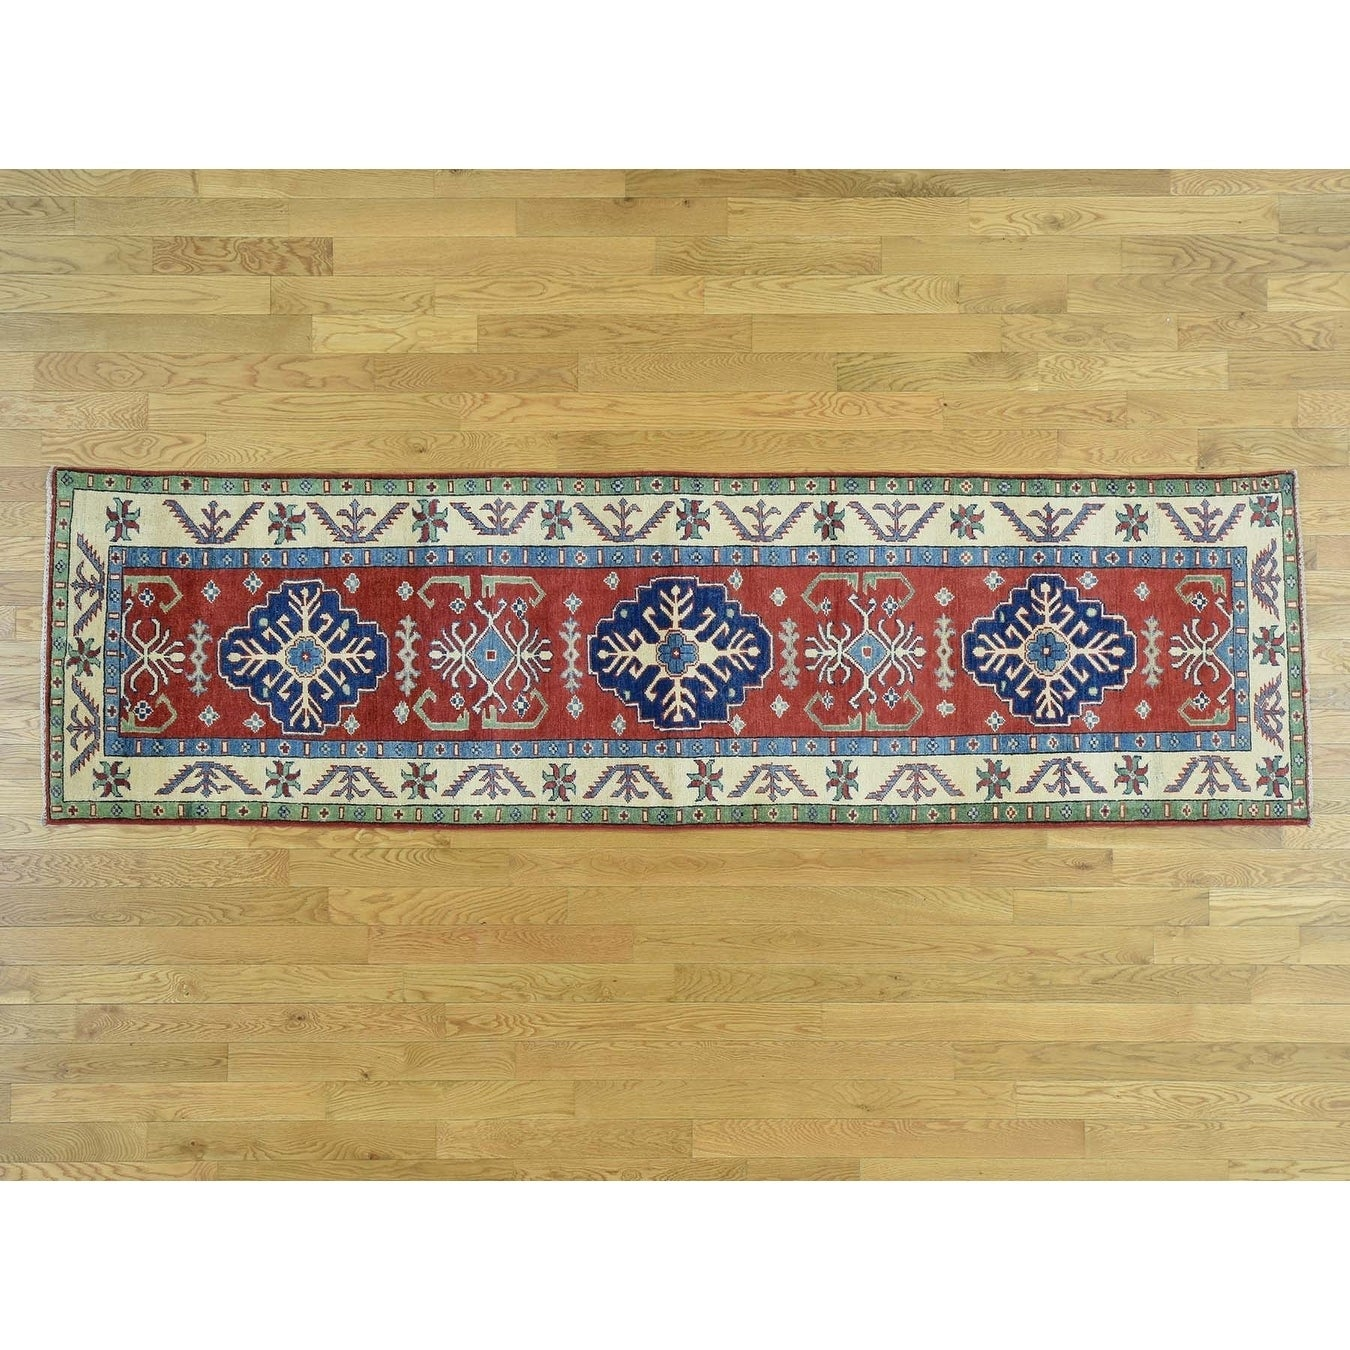 Hand Knotted Red Kazak with Wool Oriental Rug - 29 x 99